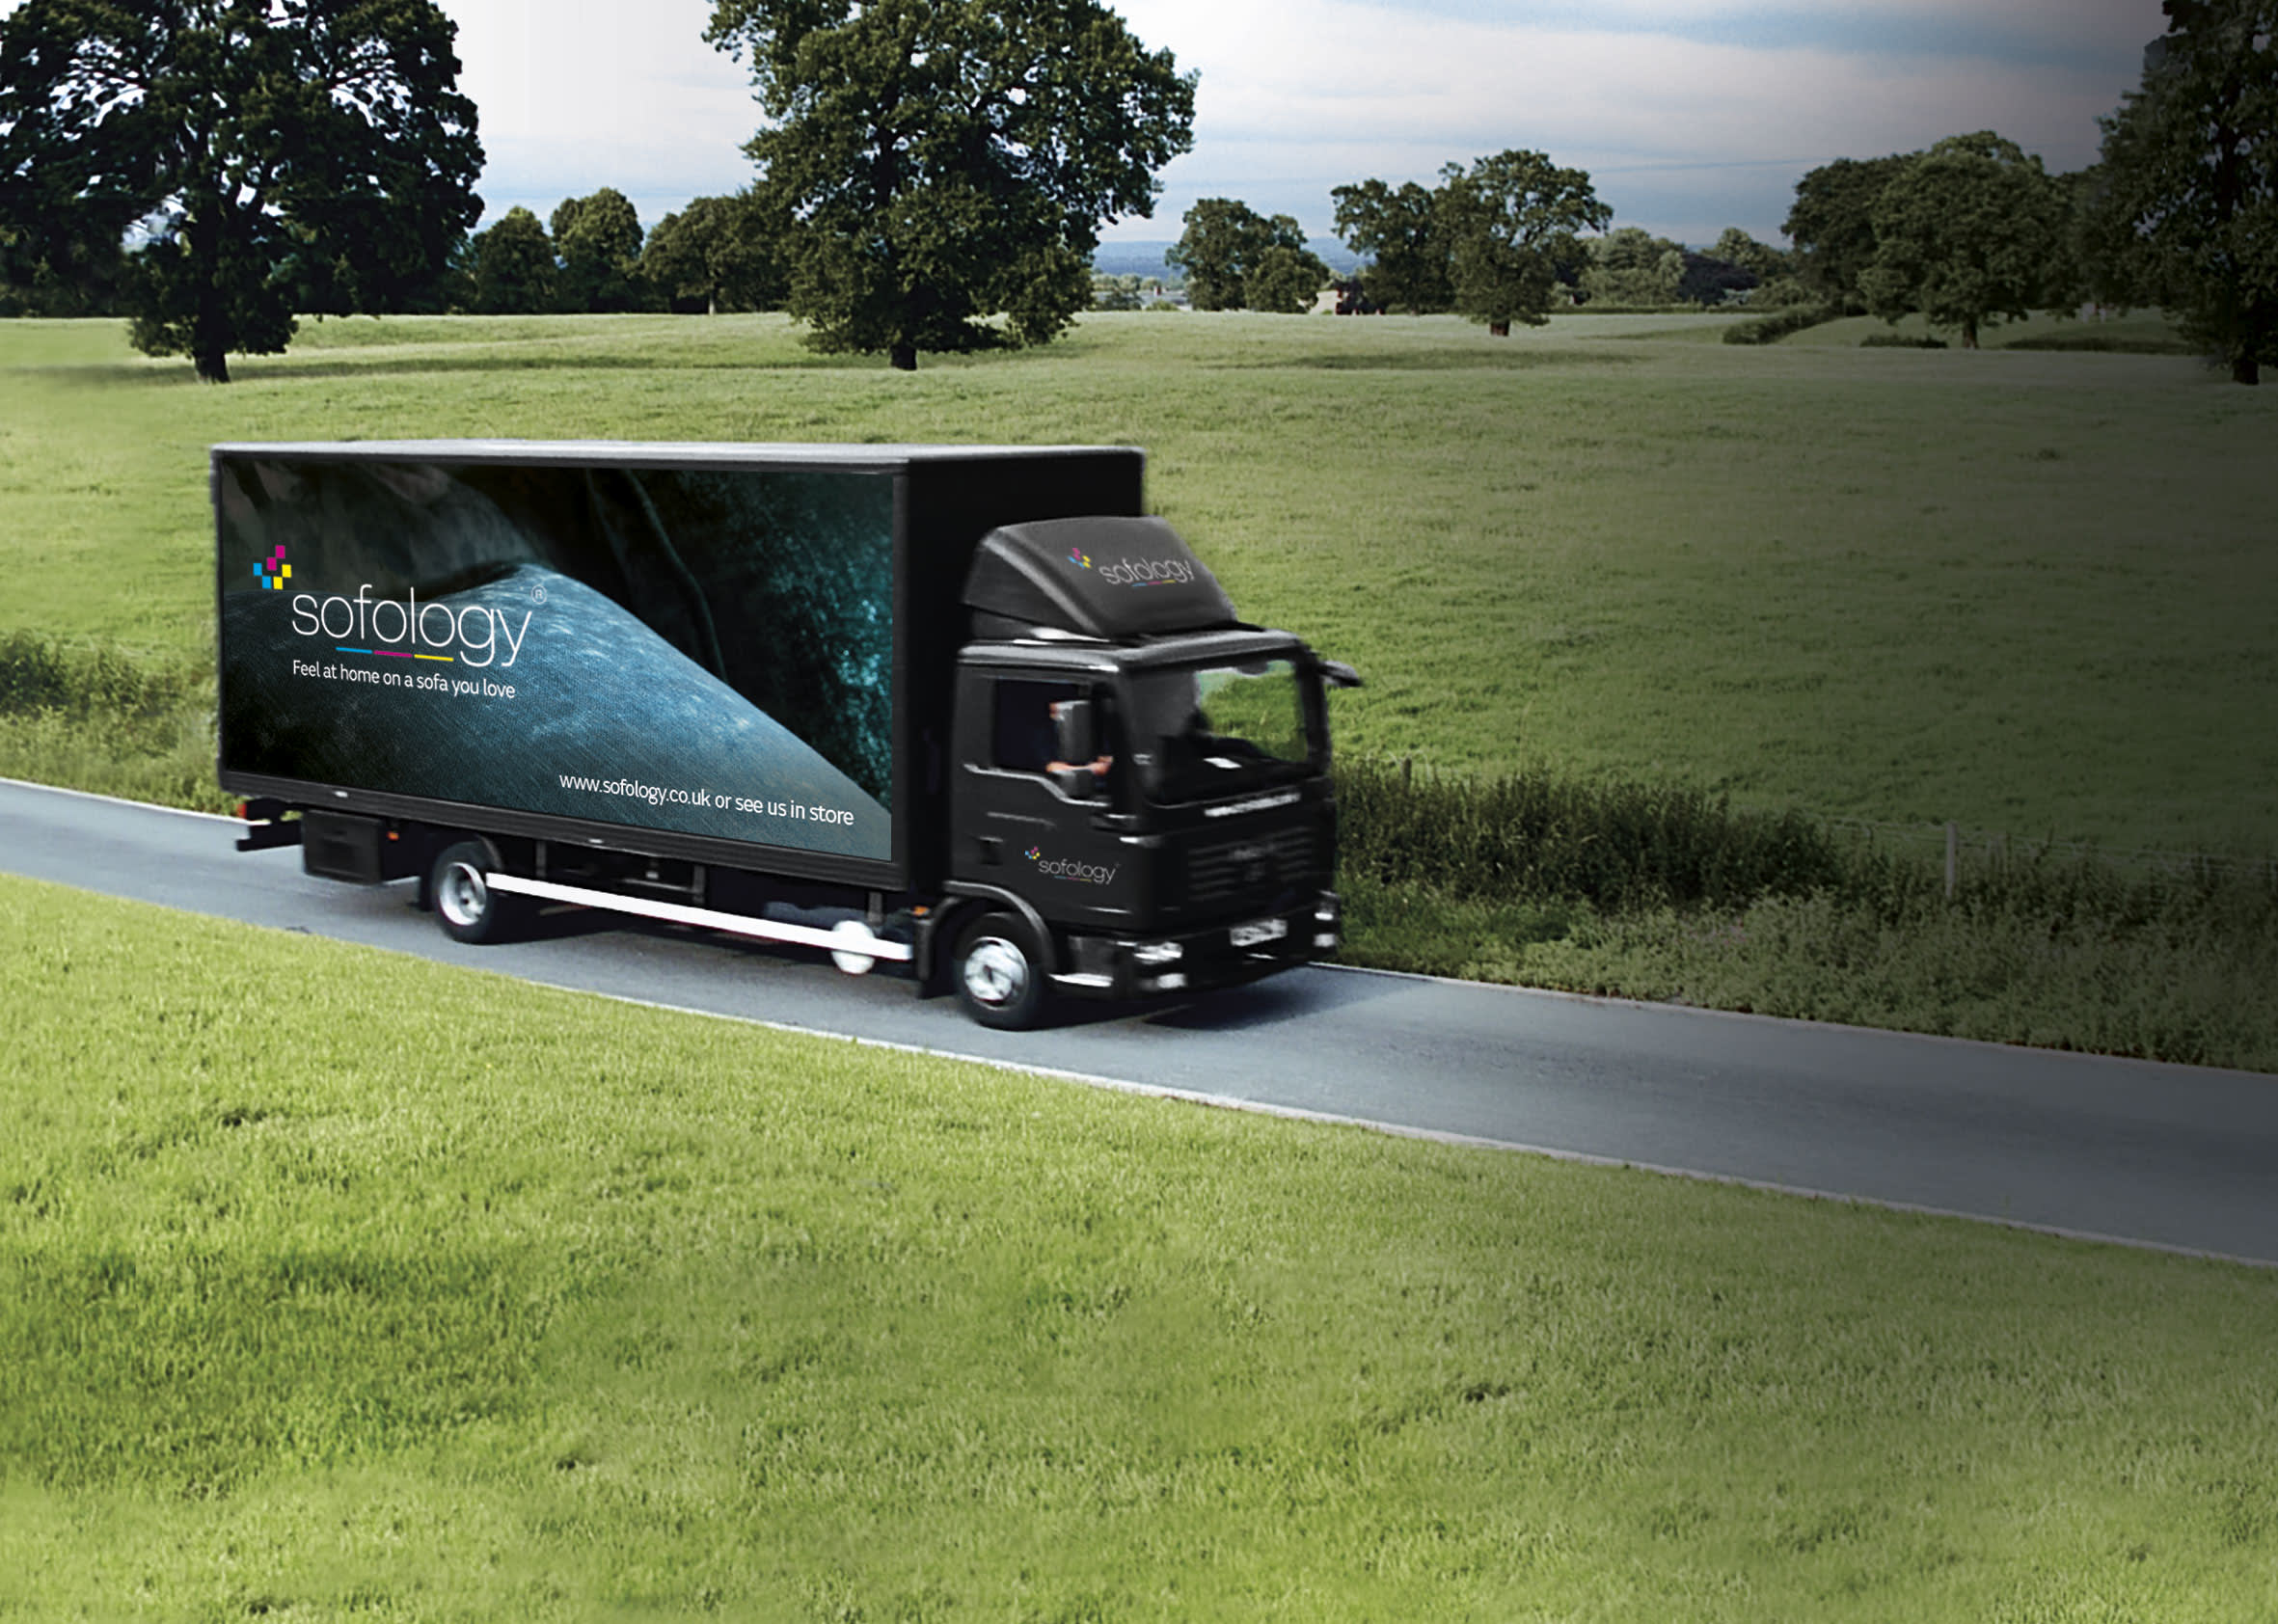 Sofology delivery truck